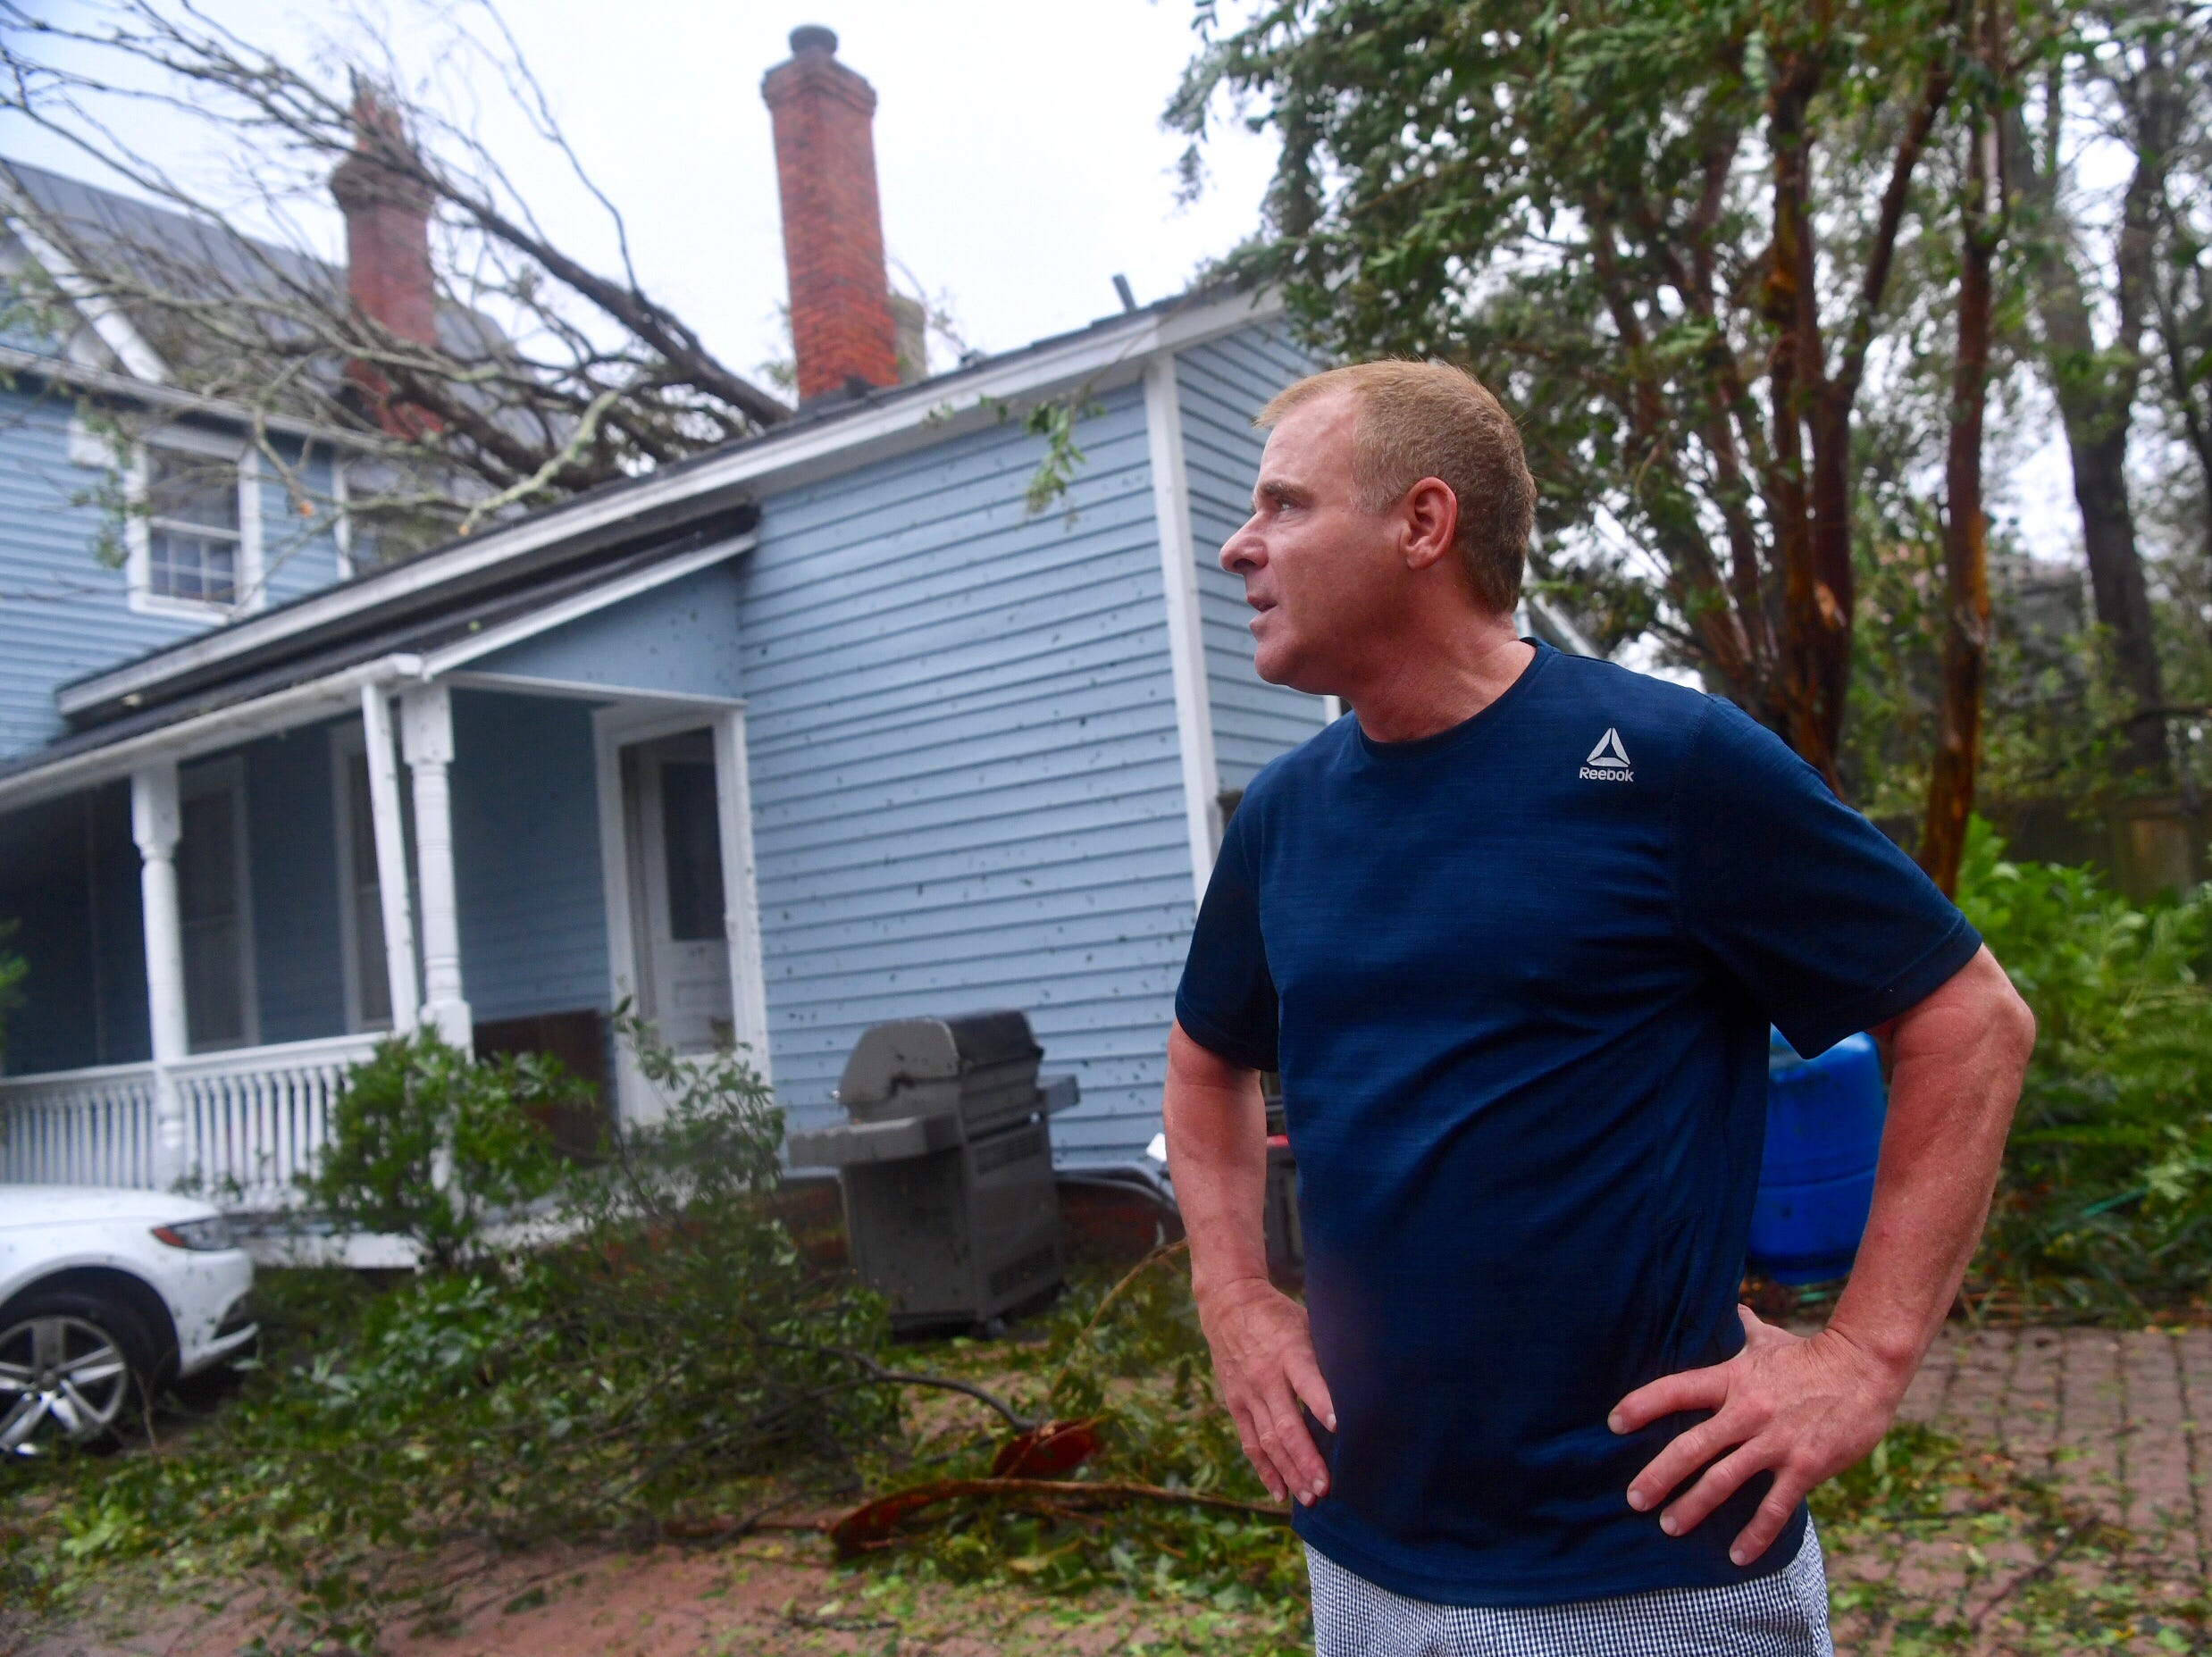 Charles Carver of Wilmington looks at his house with a tree on it and his yard as Hurricane Florence comes through Friday, Sept. 14, 2018.